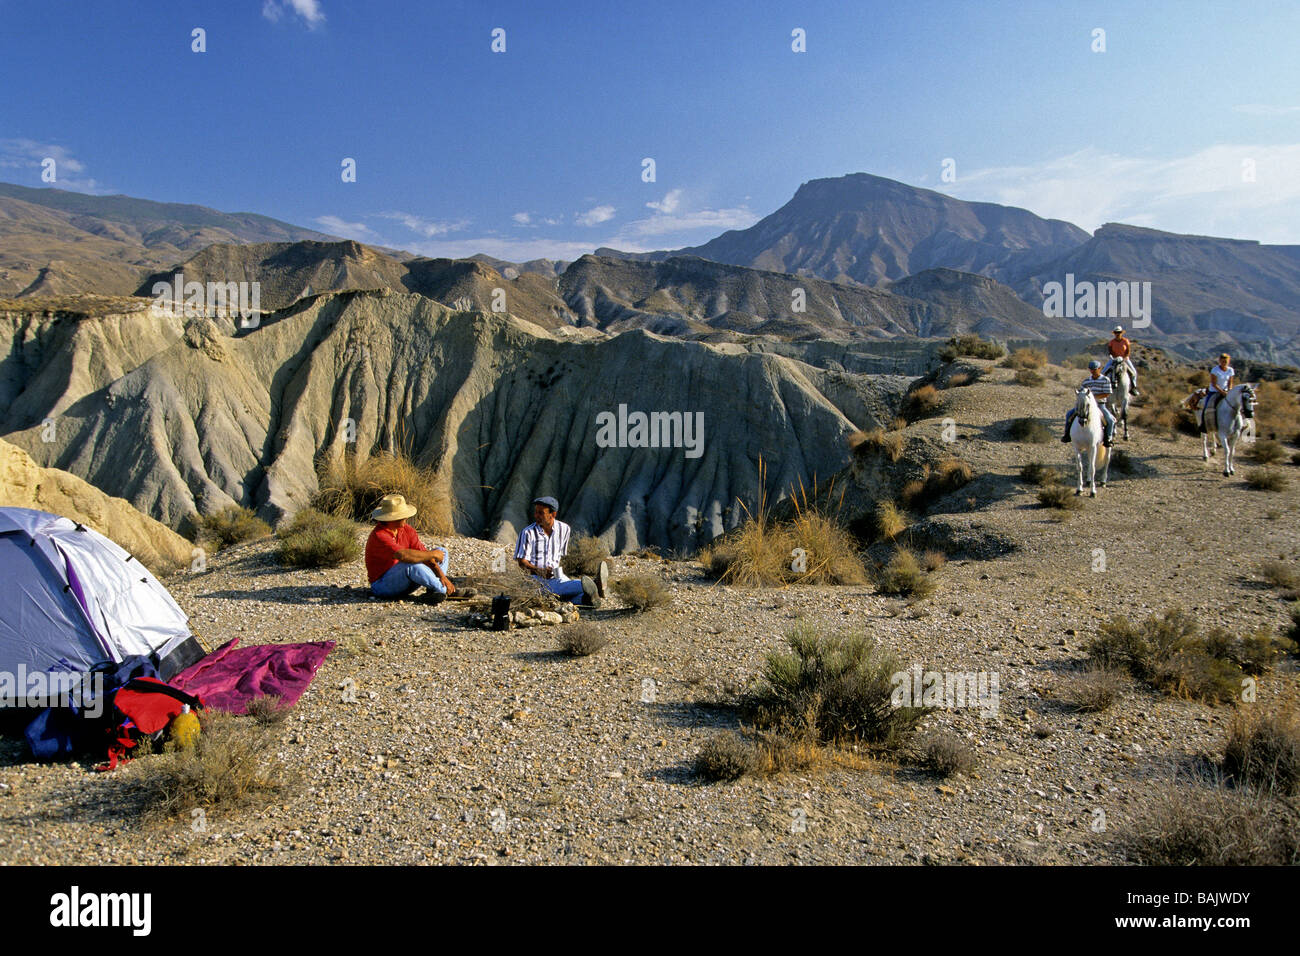 Spain, Andalucia, Tabernas Desert, Sierra Alhamilla, horse ride and camping site along the landscapes of Western - Stock Image